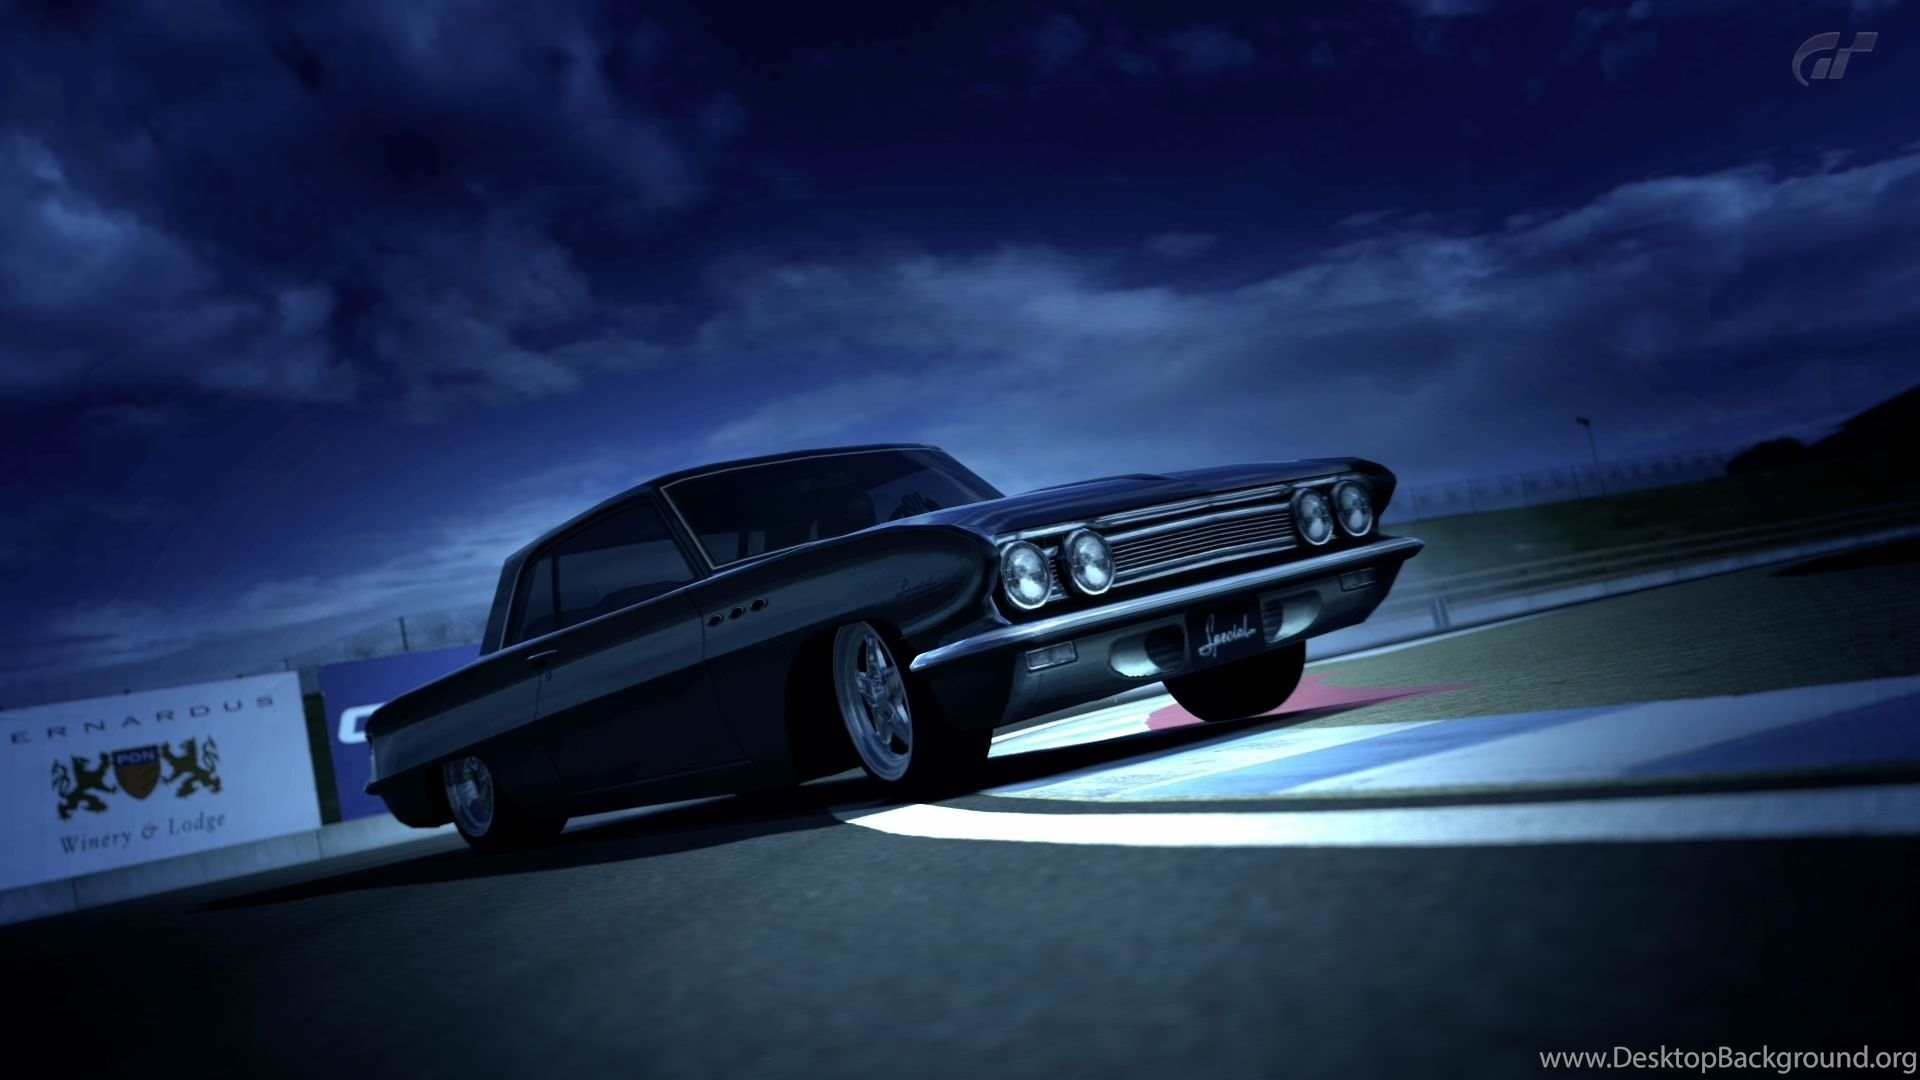 1920x1080 High Resolution American Muscle Car Wallpapers Free Download Full .